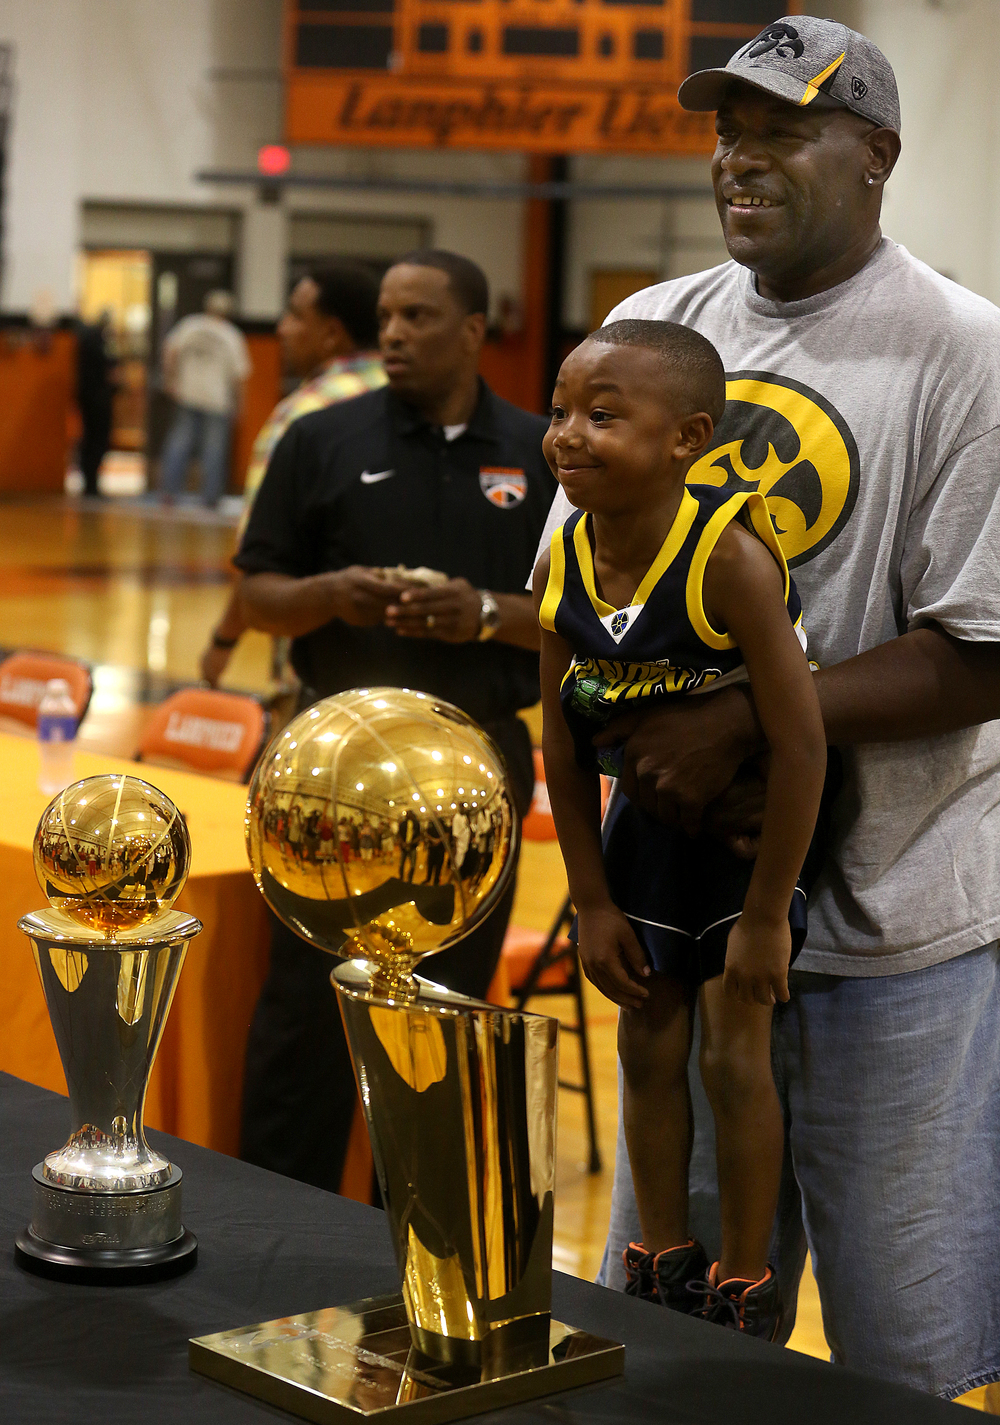 Former NBA player Ed Horton of Springfield, who played for Lanphier High School, picks up his son Ed Horton Jr., 6, while getting their photo taken with the NBA championship and NBA Finals MVP trophies before the start of the ceremony. David Spencer/The State Journal-Register